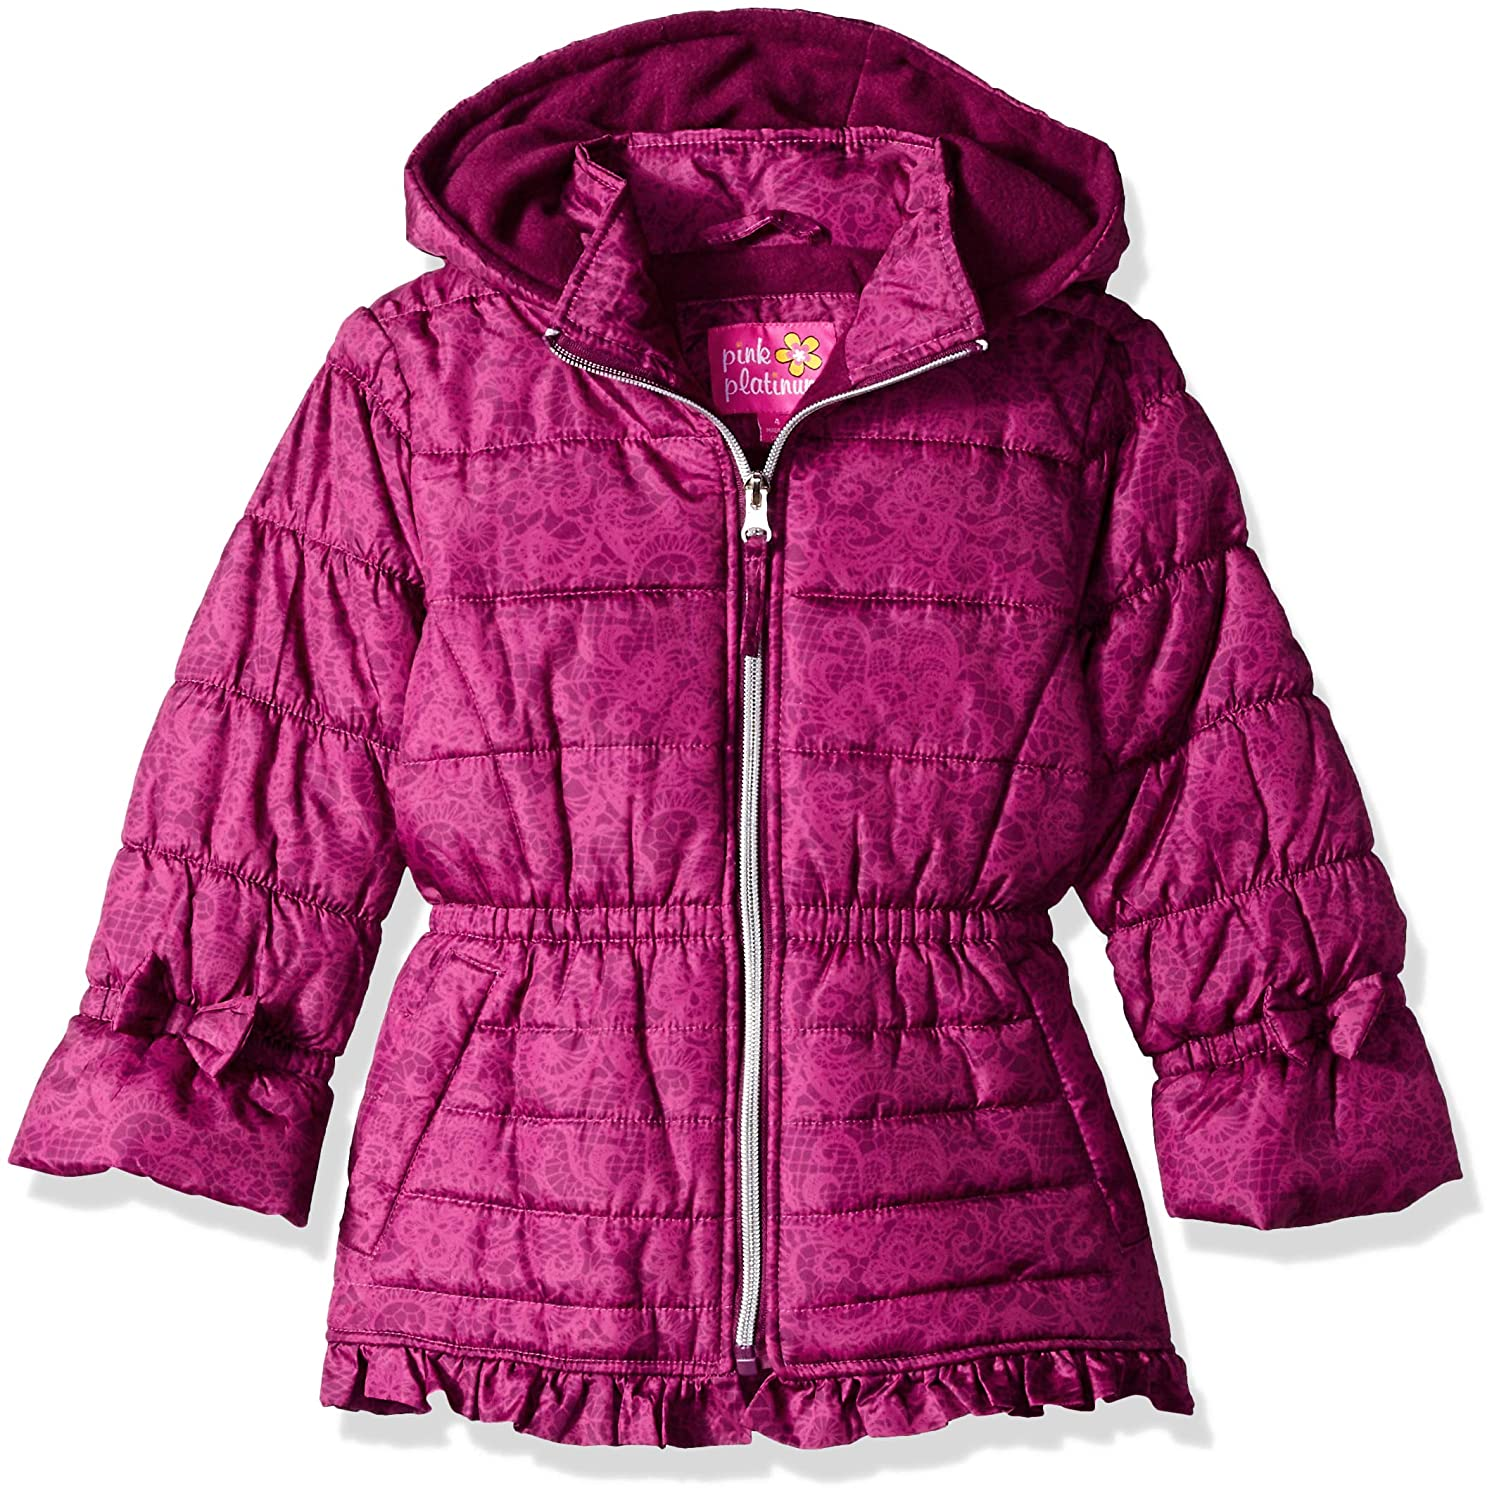 Pink Platinum Girls Lace Puffer Ruffle